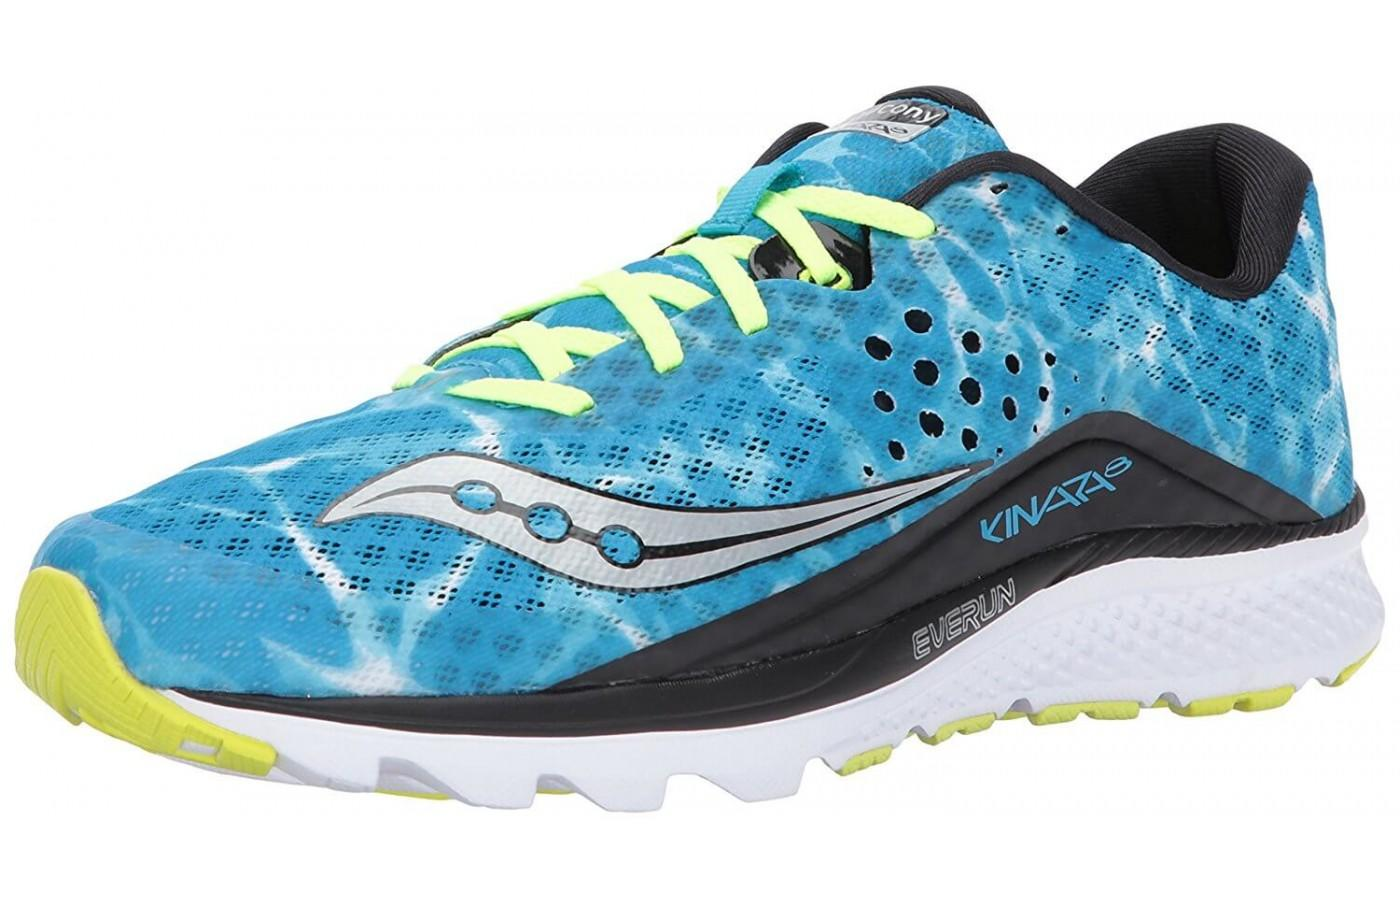 Saucony Kinvara 8 Fully Reviewed & Compared